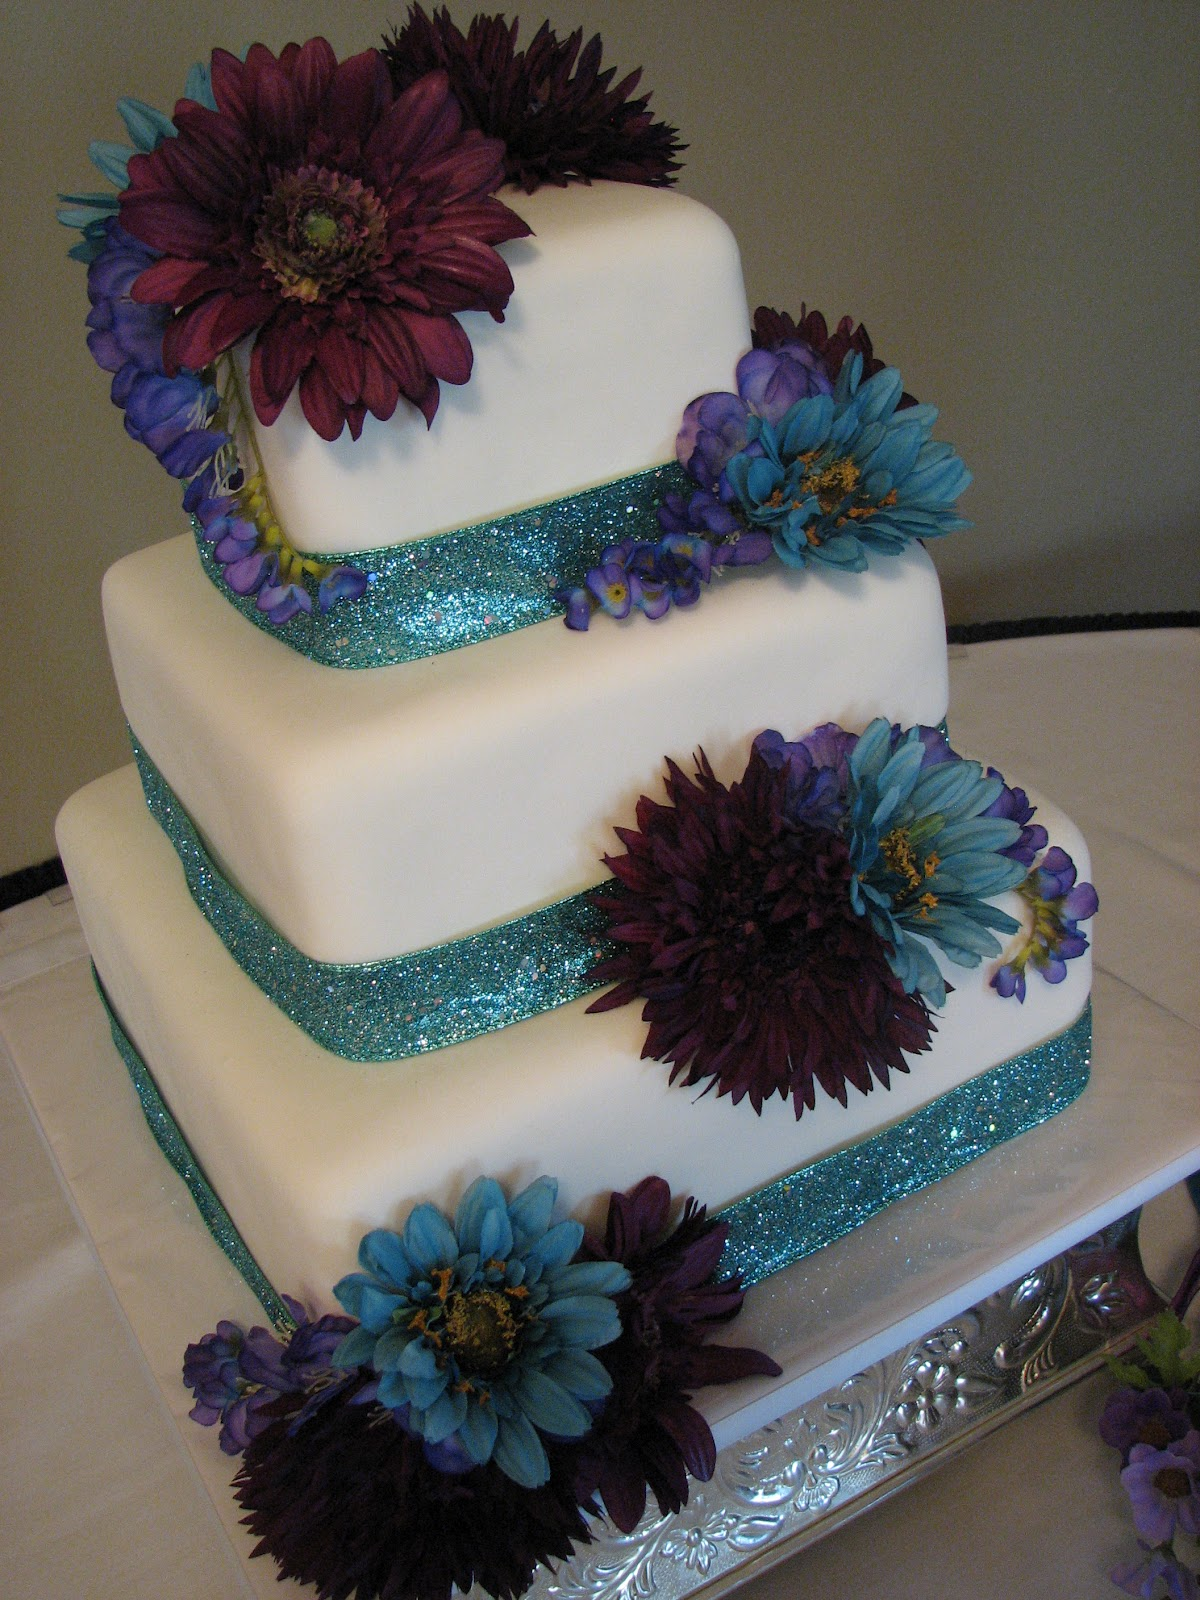 decadent designs brandy 39 s turquoise and purple wedding cake. Black Bedroom Furniture Sets. Home Design Ideas